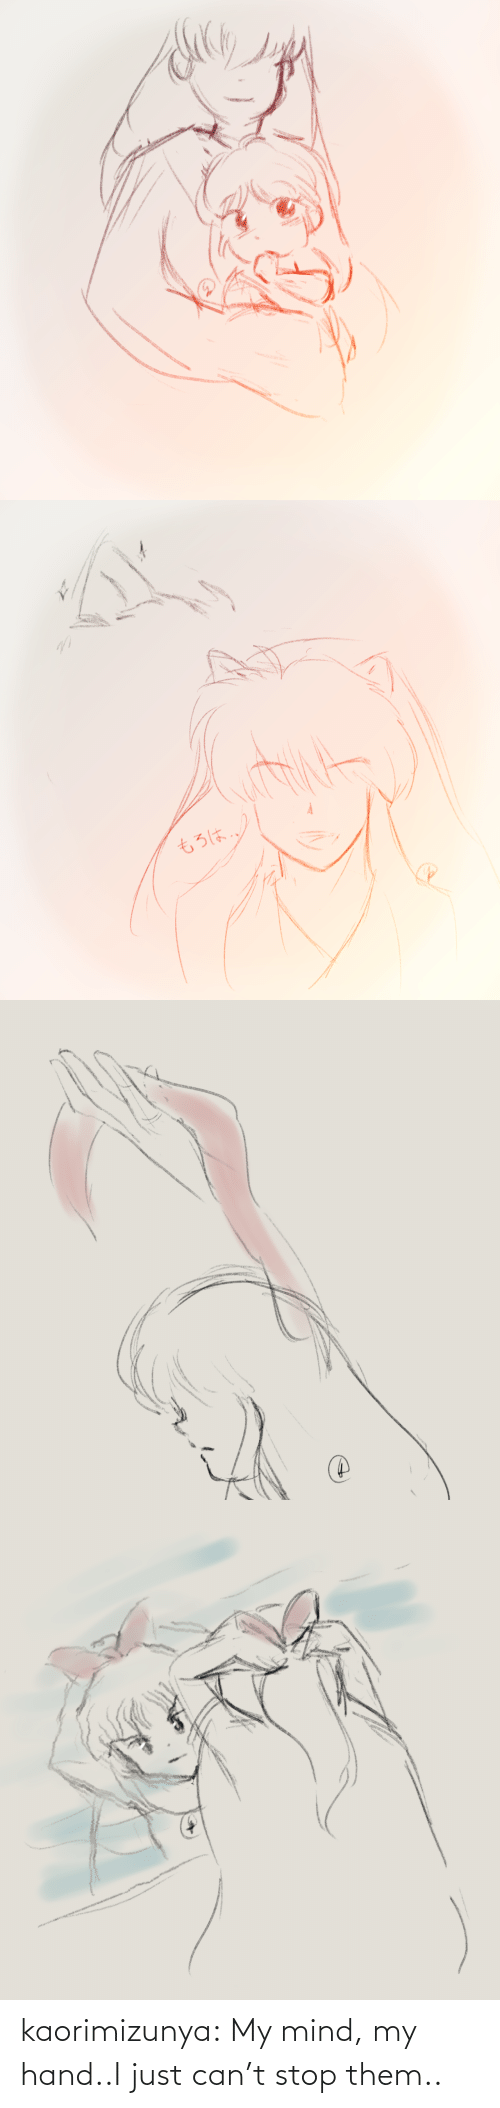 Cant: kaorimizunya: My mind, my hand..I just can't stop them..